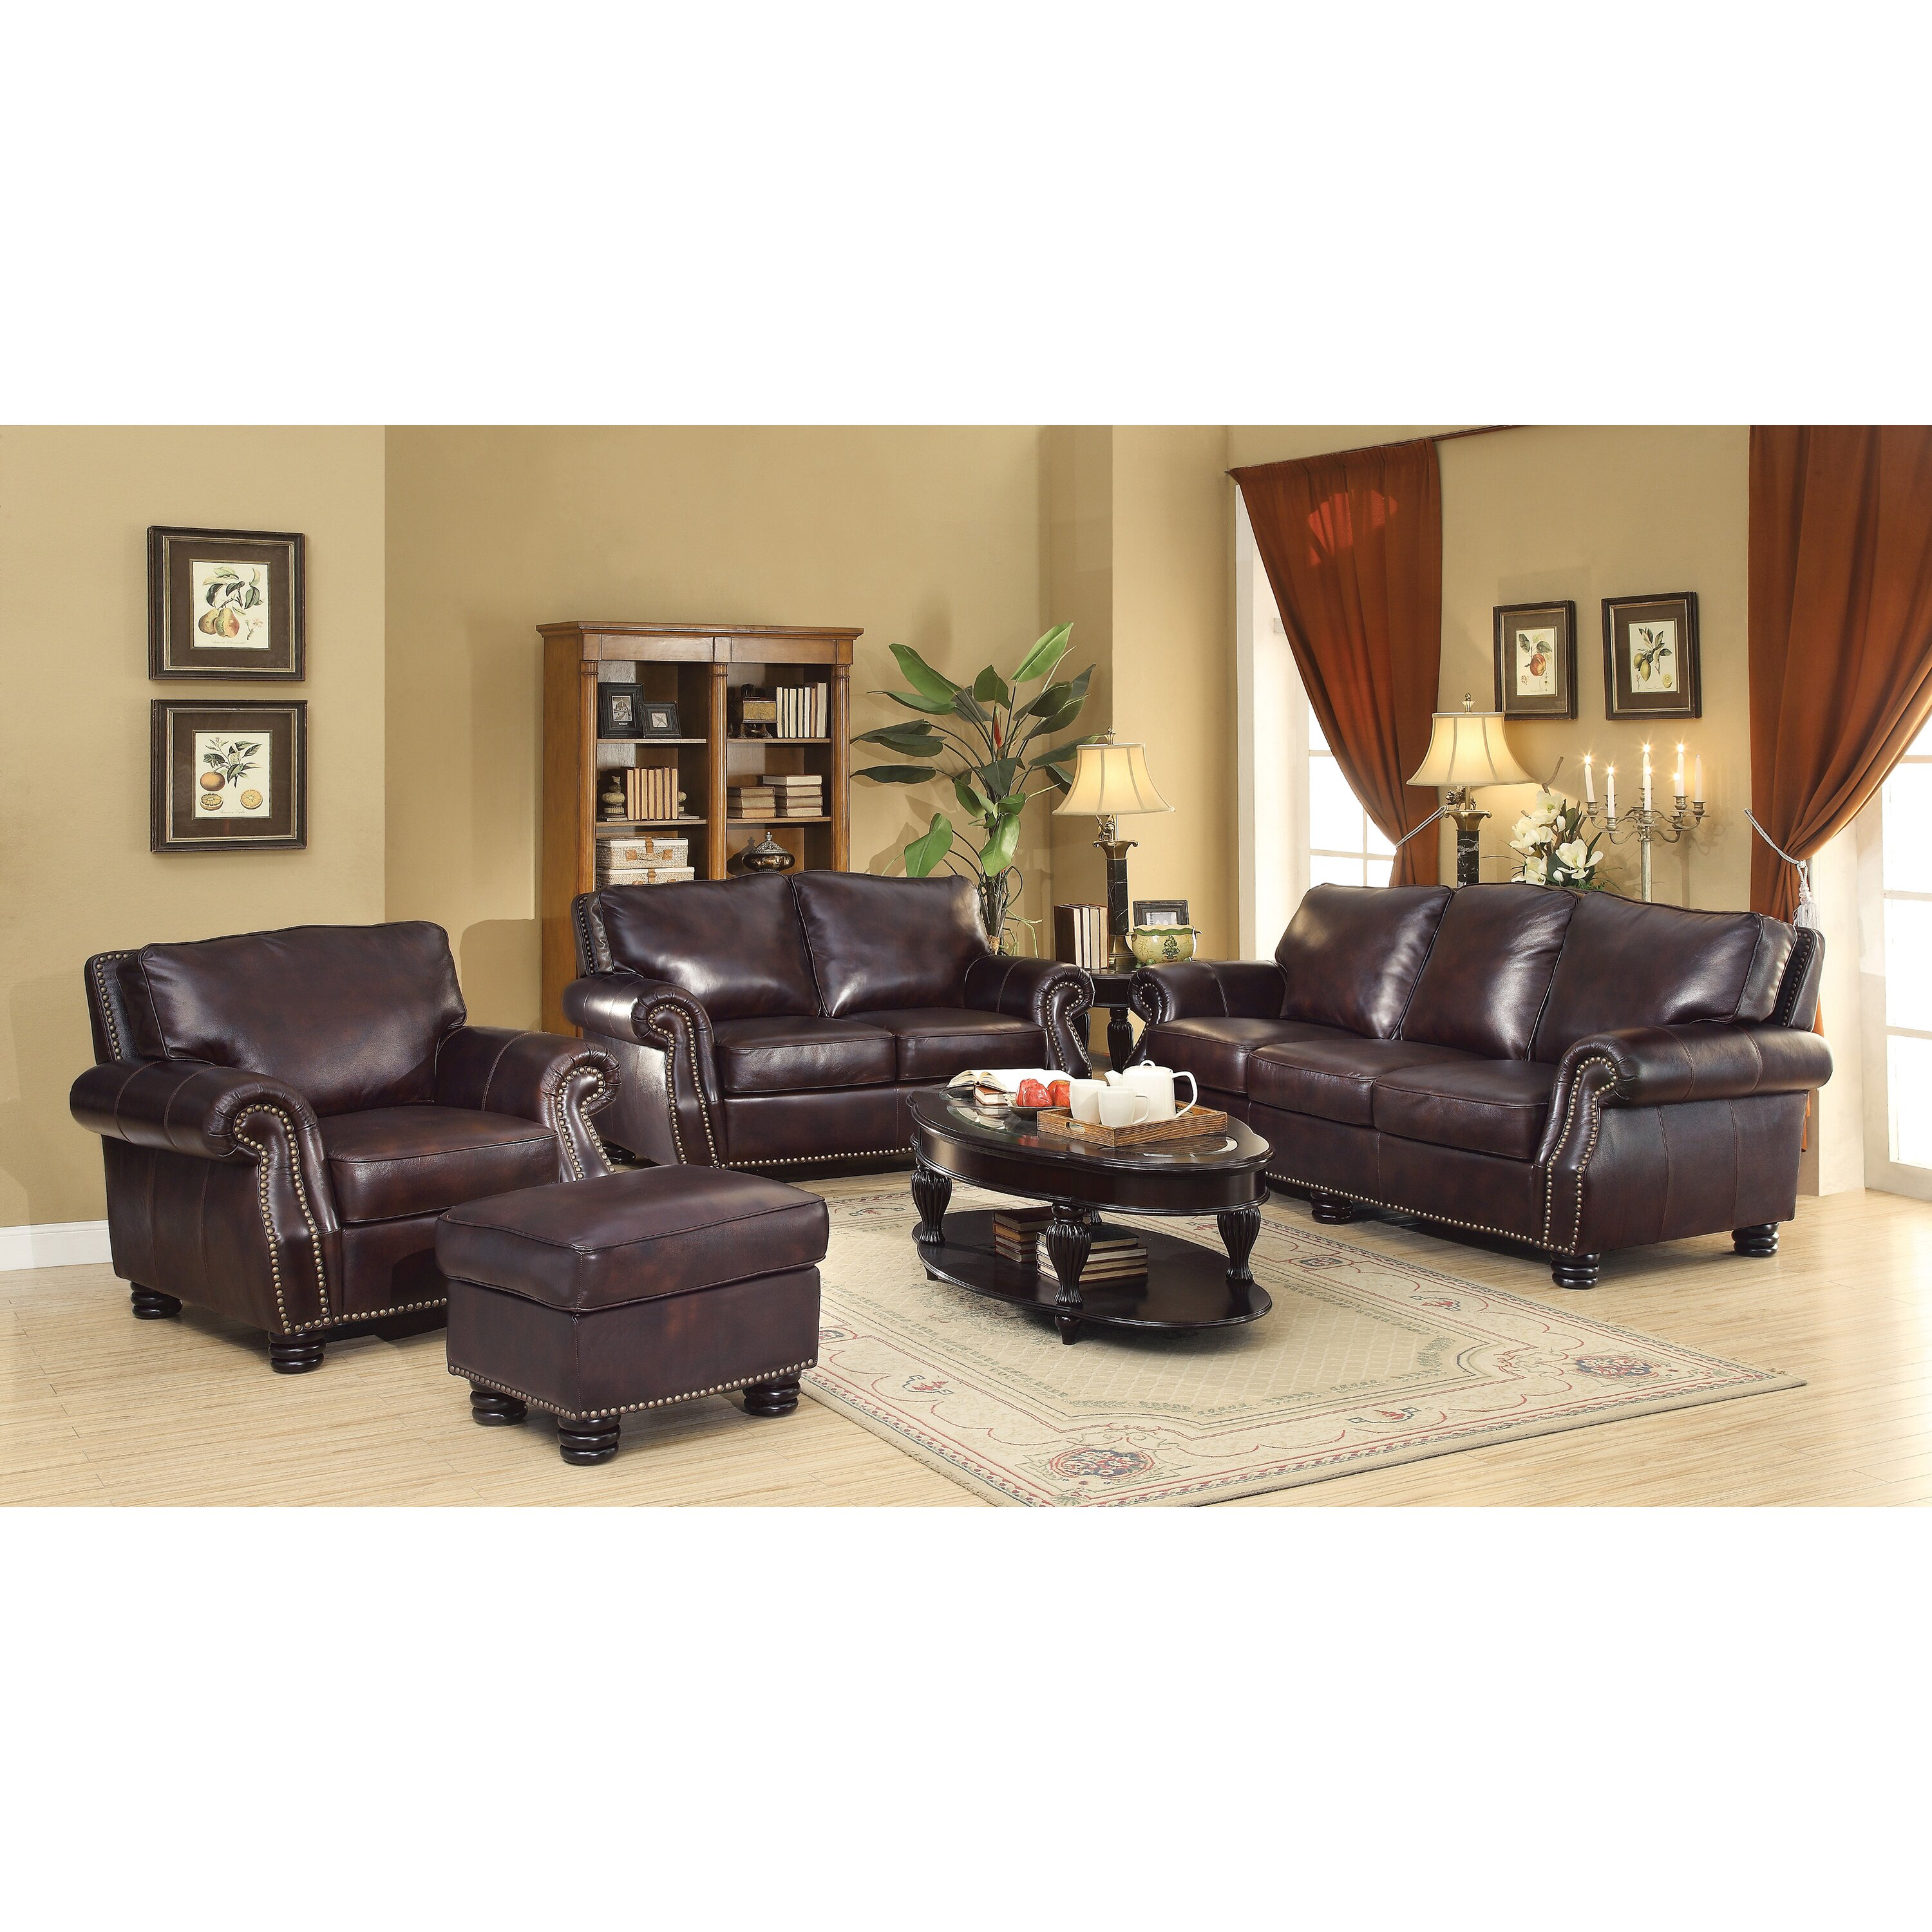 Wildon Home Briscoe Leather Modular Sofa Reviews Wayfair